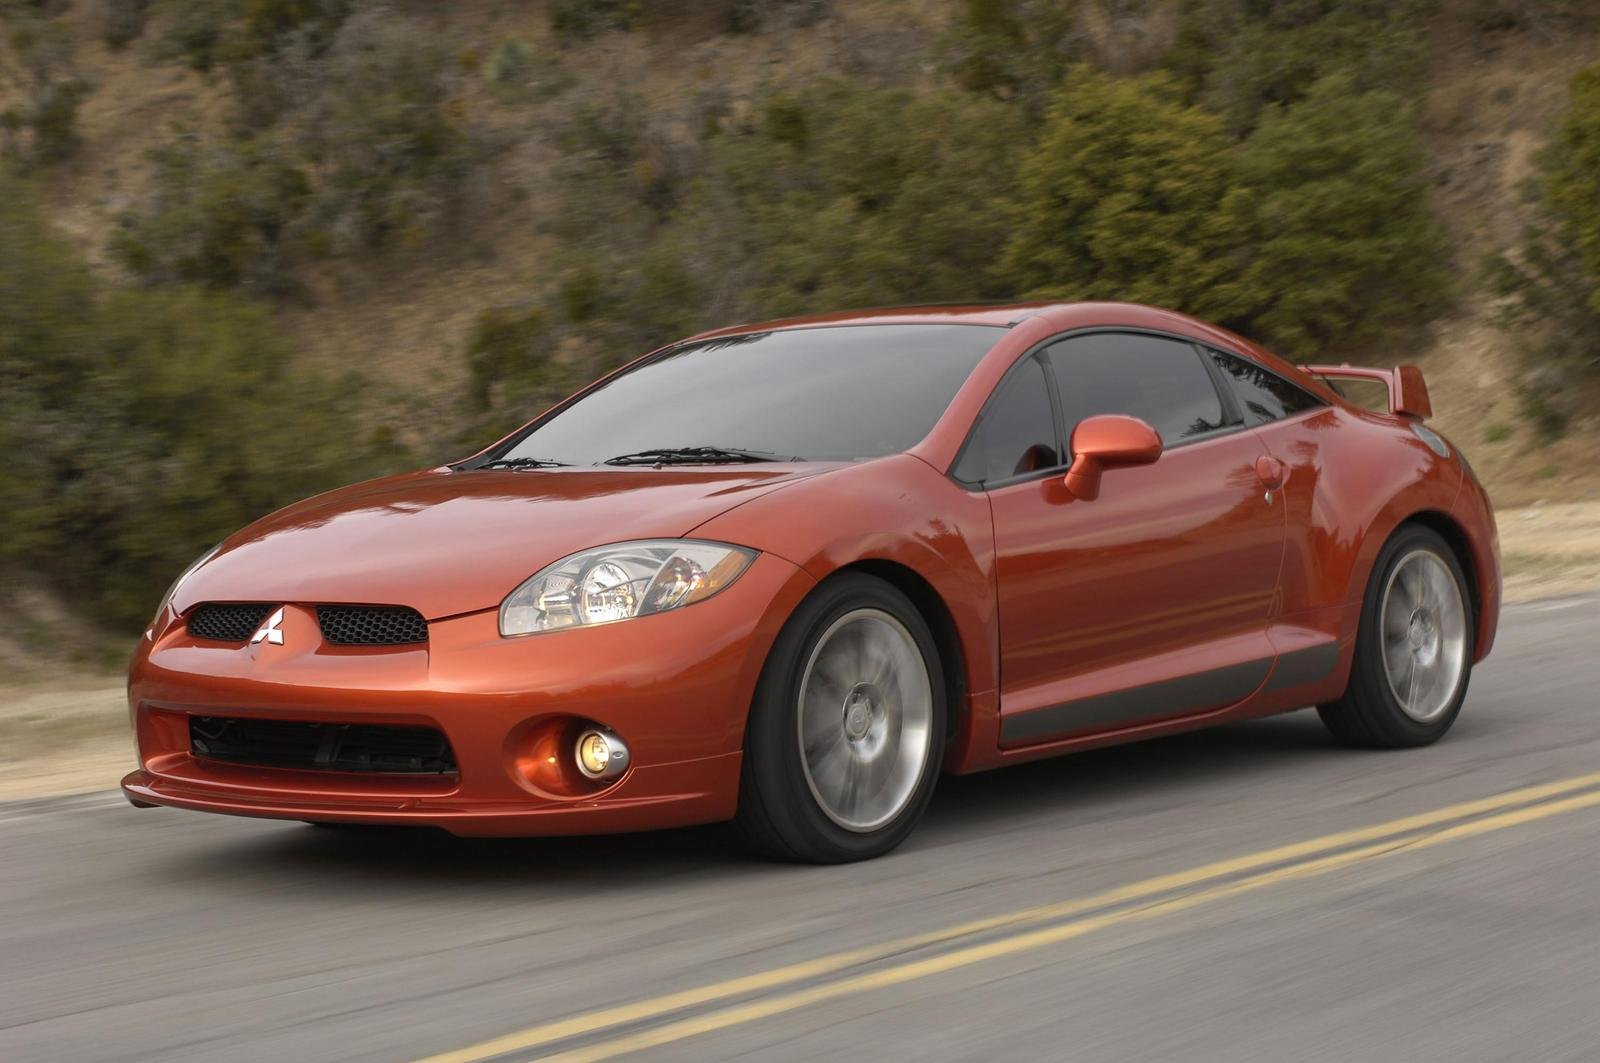 2008 mitsubishi eclipse picture 217026 car review. Black Bedroom Furniture Sets. Home Design Ideas